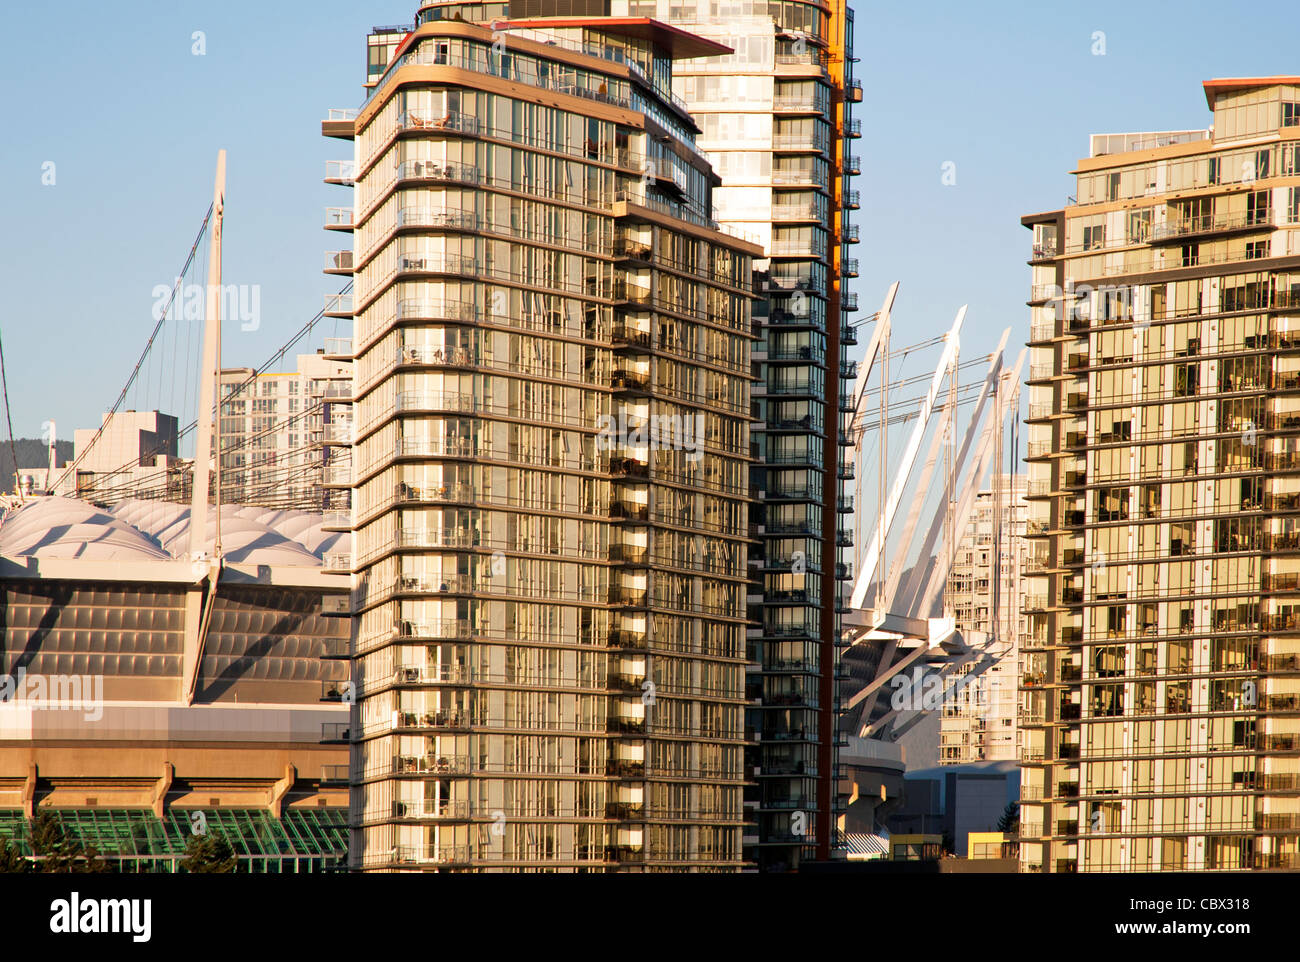 Condominium high rises in downtown Vancouver, British Columbia, Canada - Stock Image